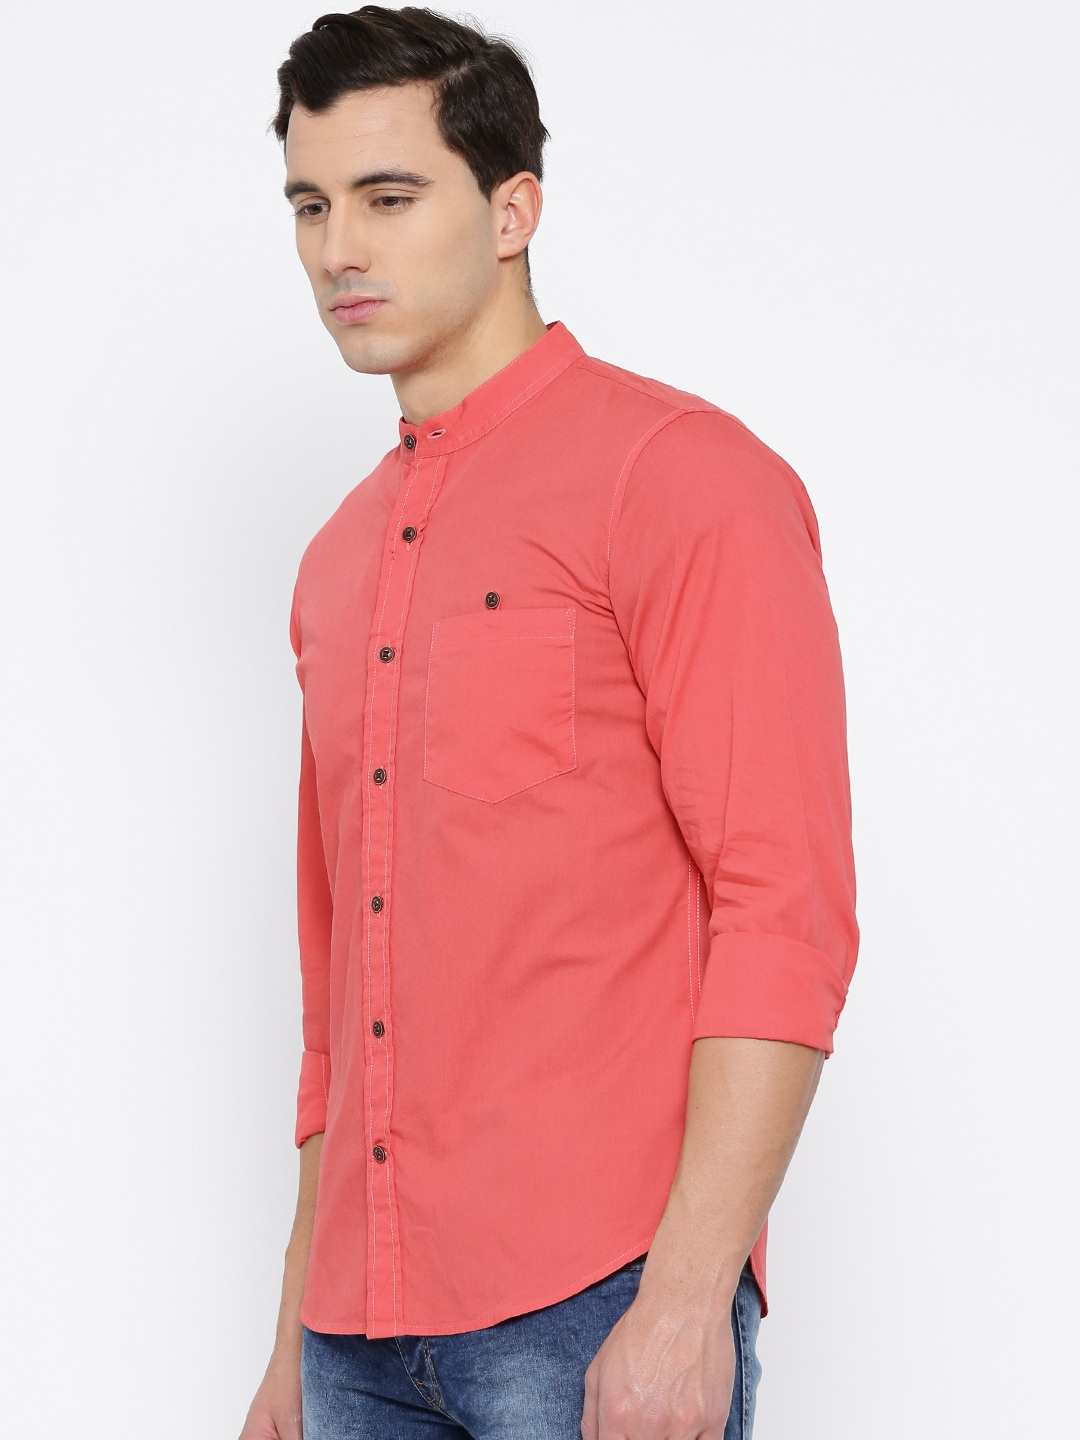 United Colors Of Benetton Shirts - Buy United Colors Of Benetton ...